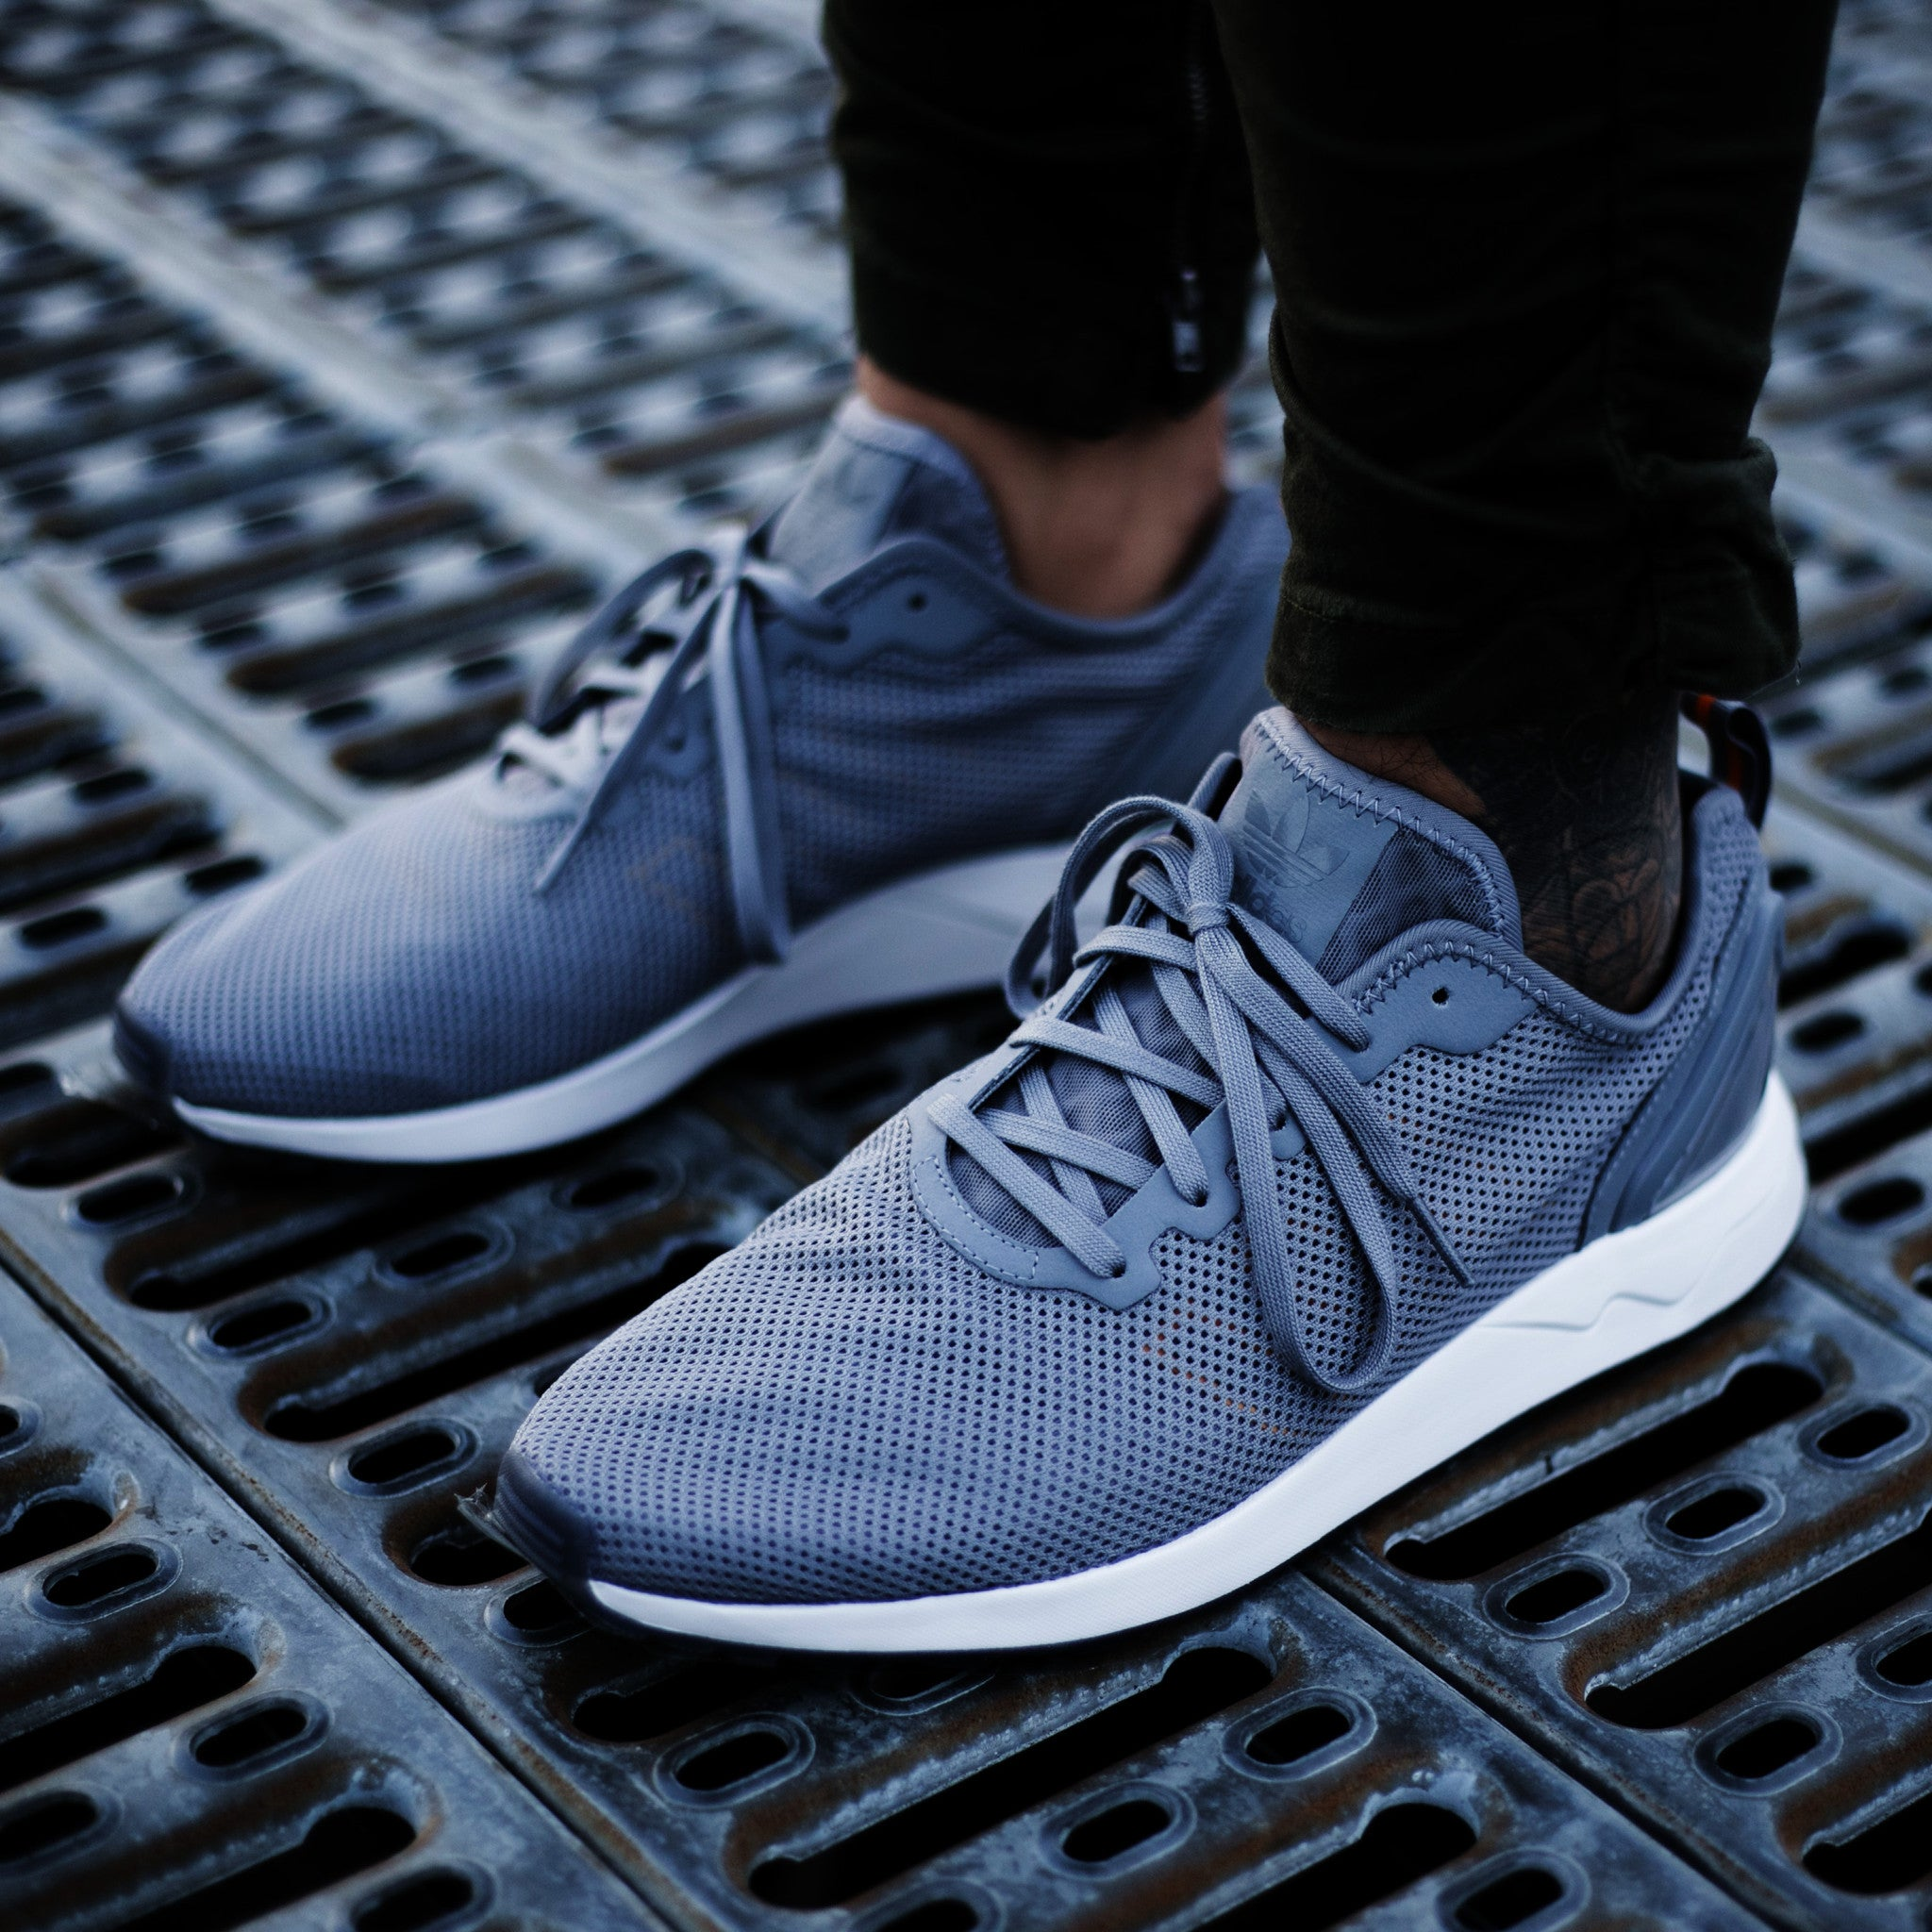 meet 19072 fc197 Adidas ZX Flux ADV Super Lite (Grey/White)